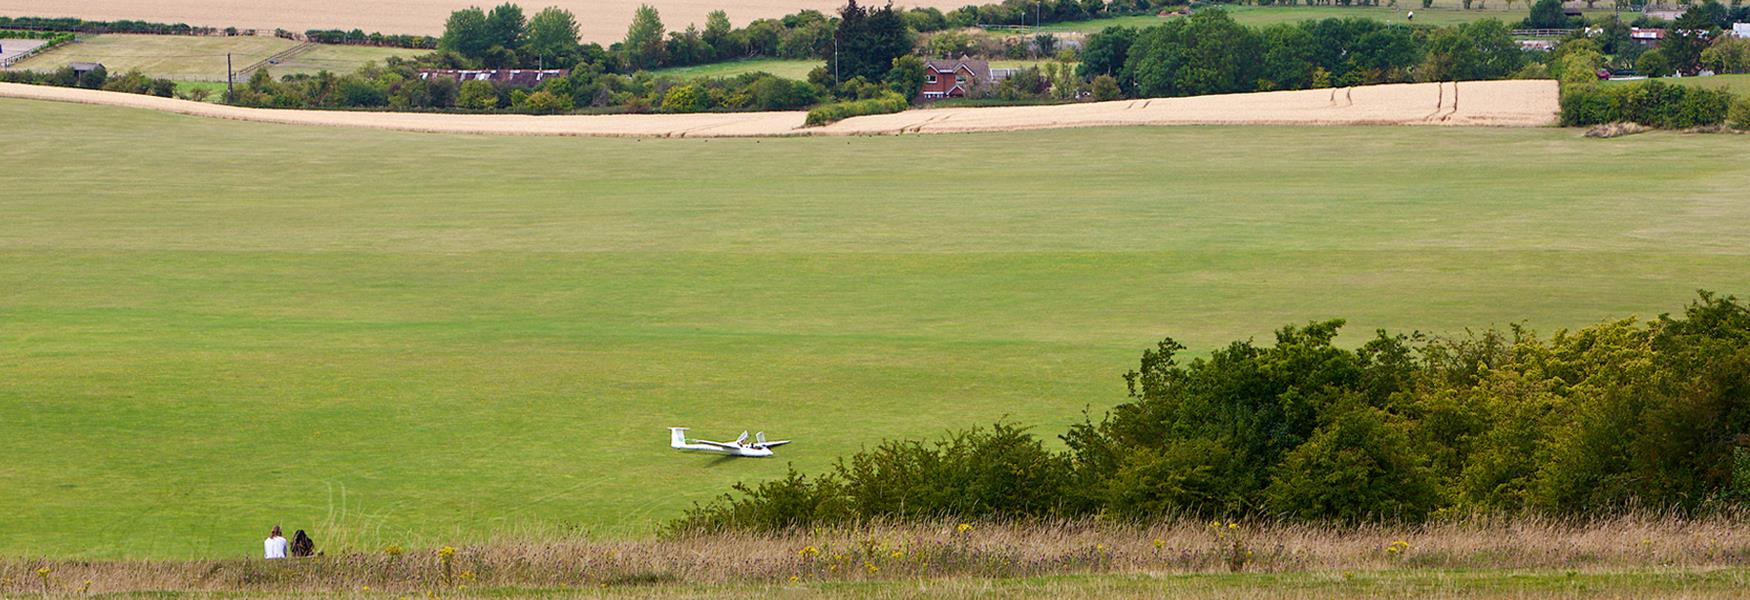 View from Dunstable Downs of a glider